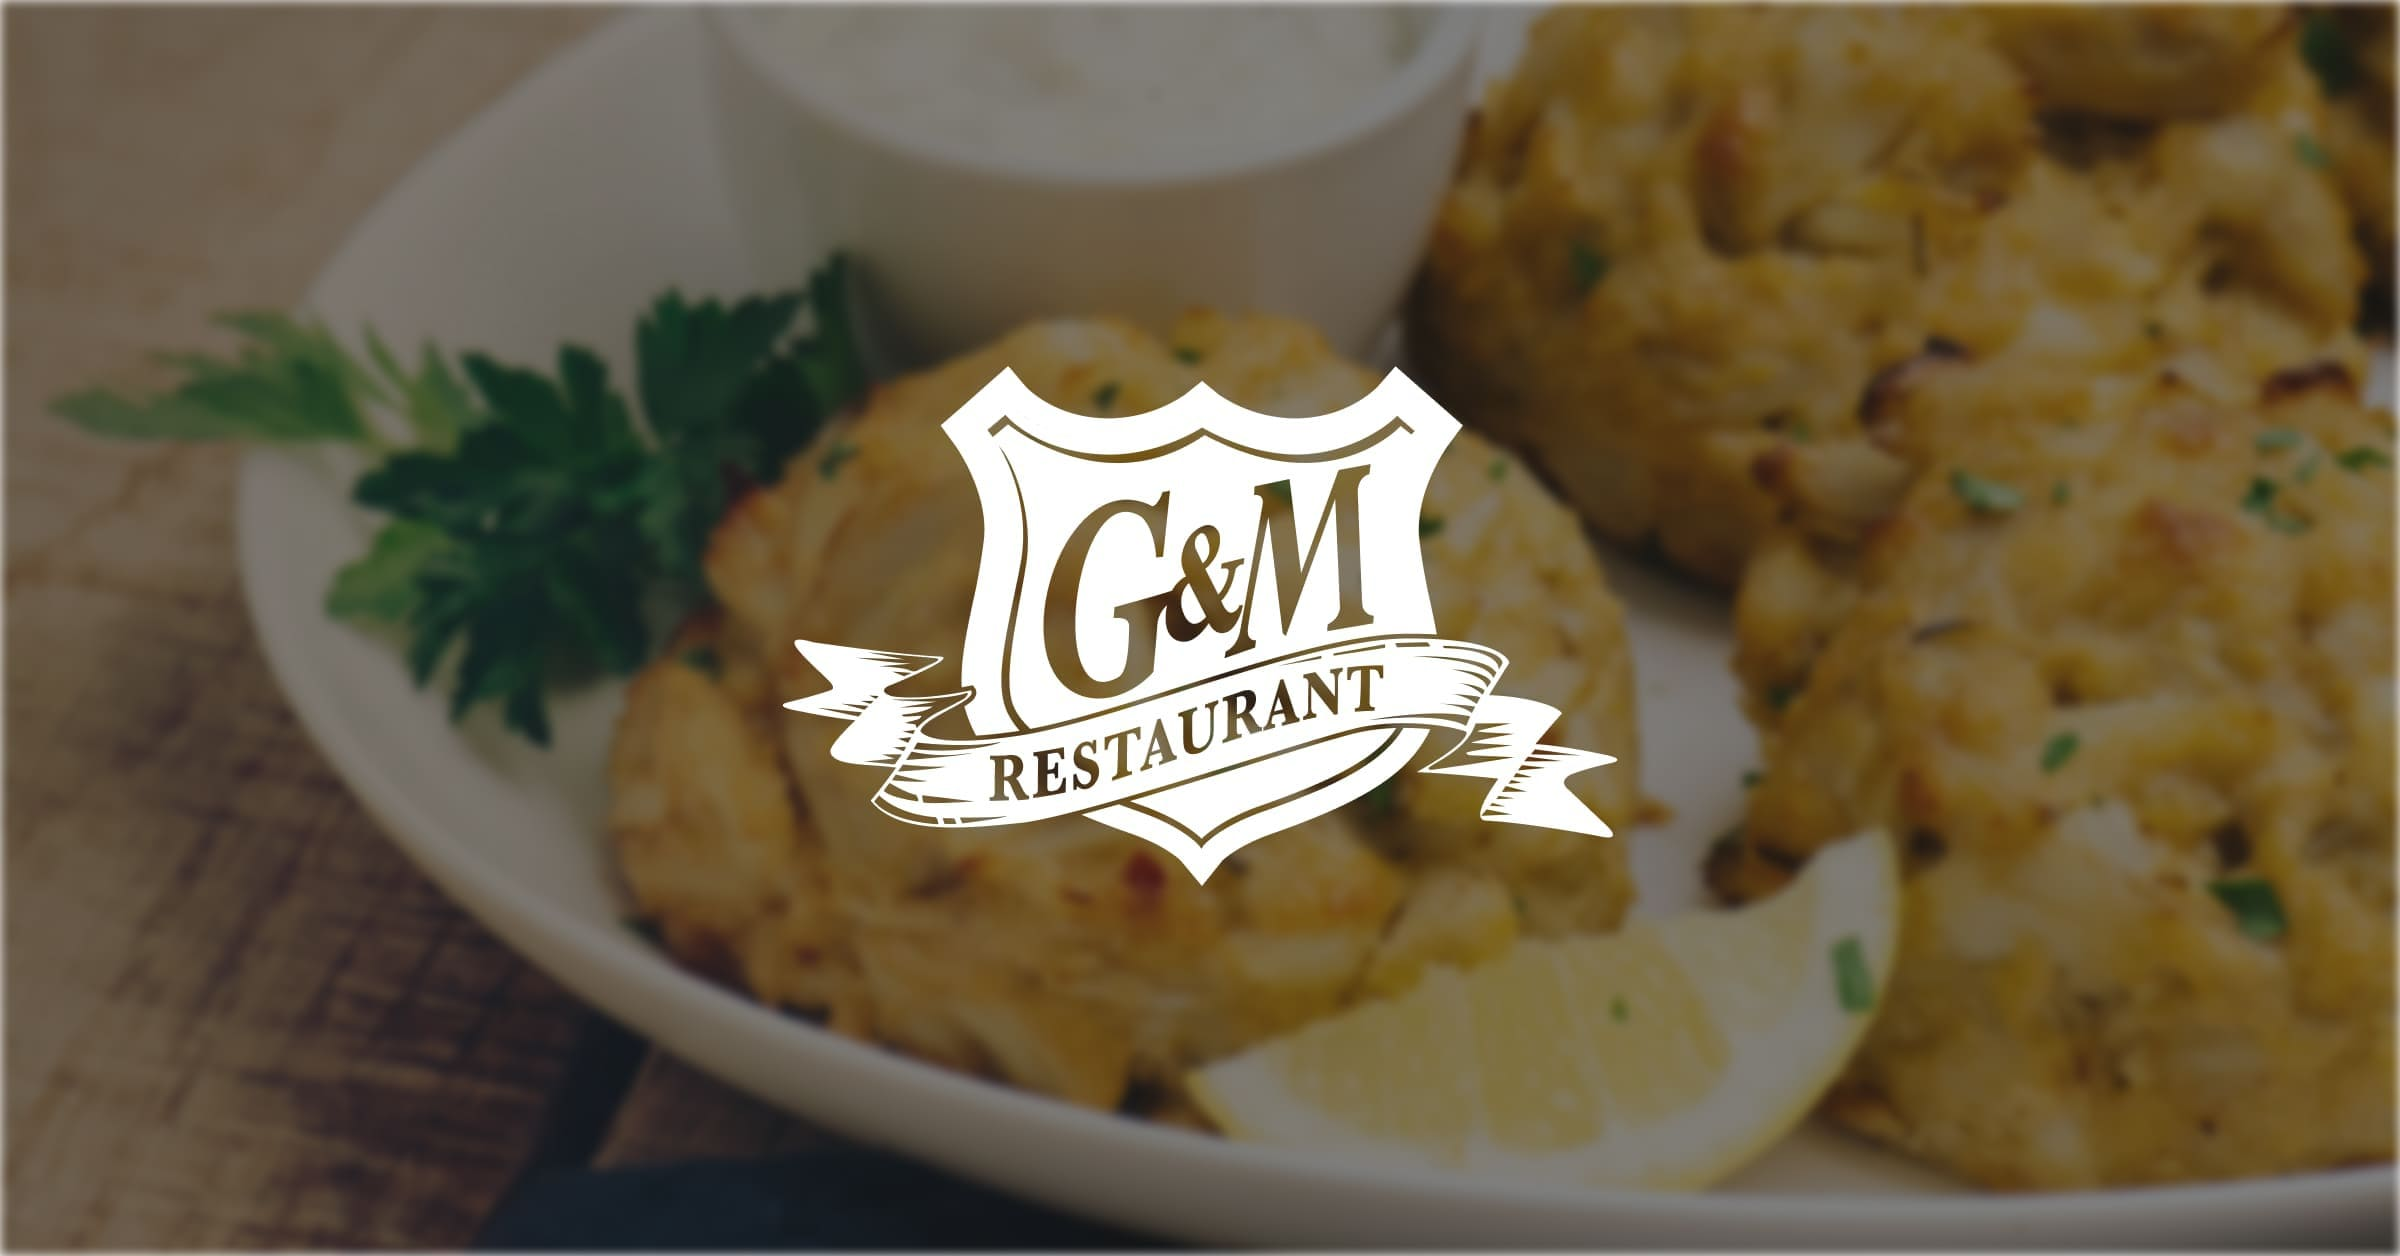 eCommerce User Experience: How We Helped G&M Reduce Buyer Friction